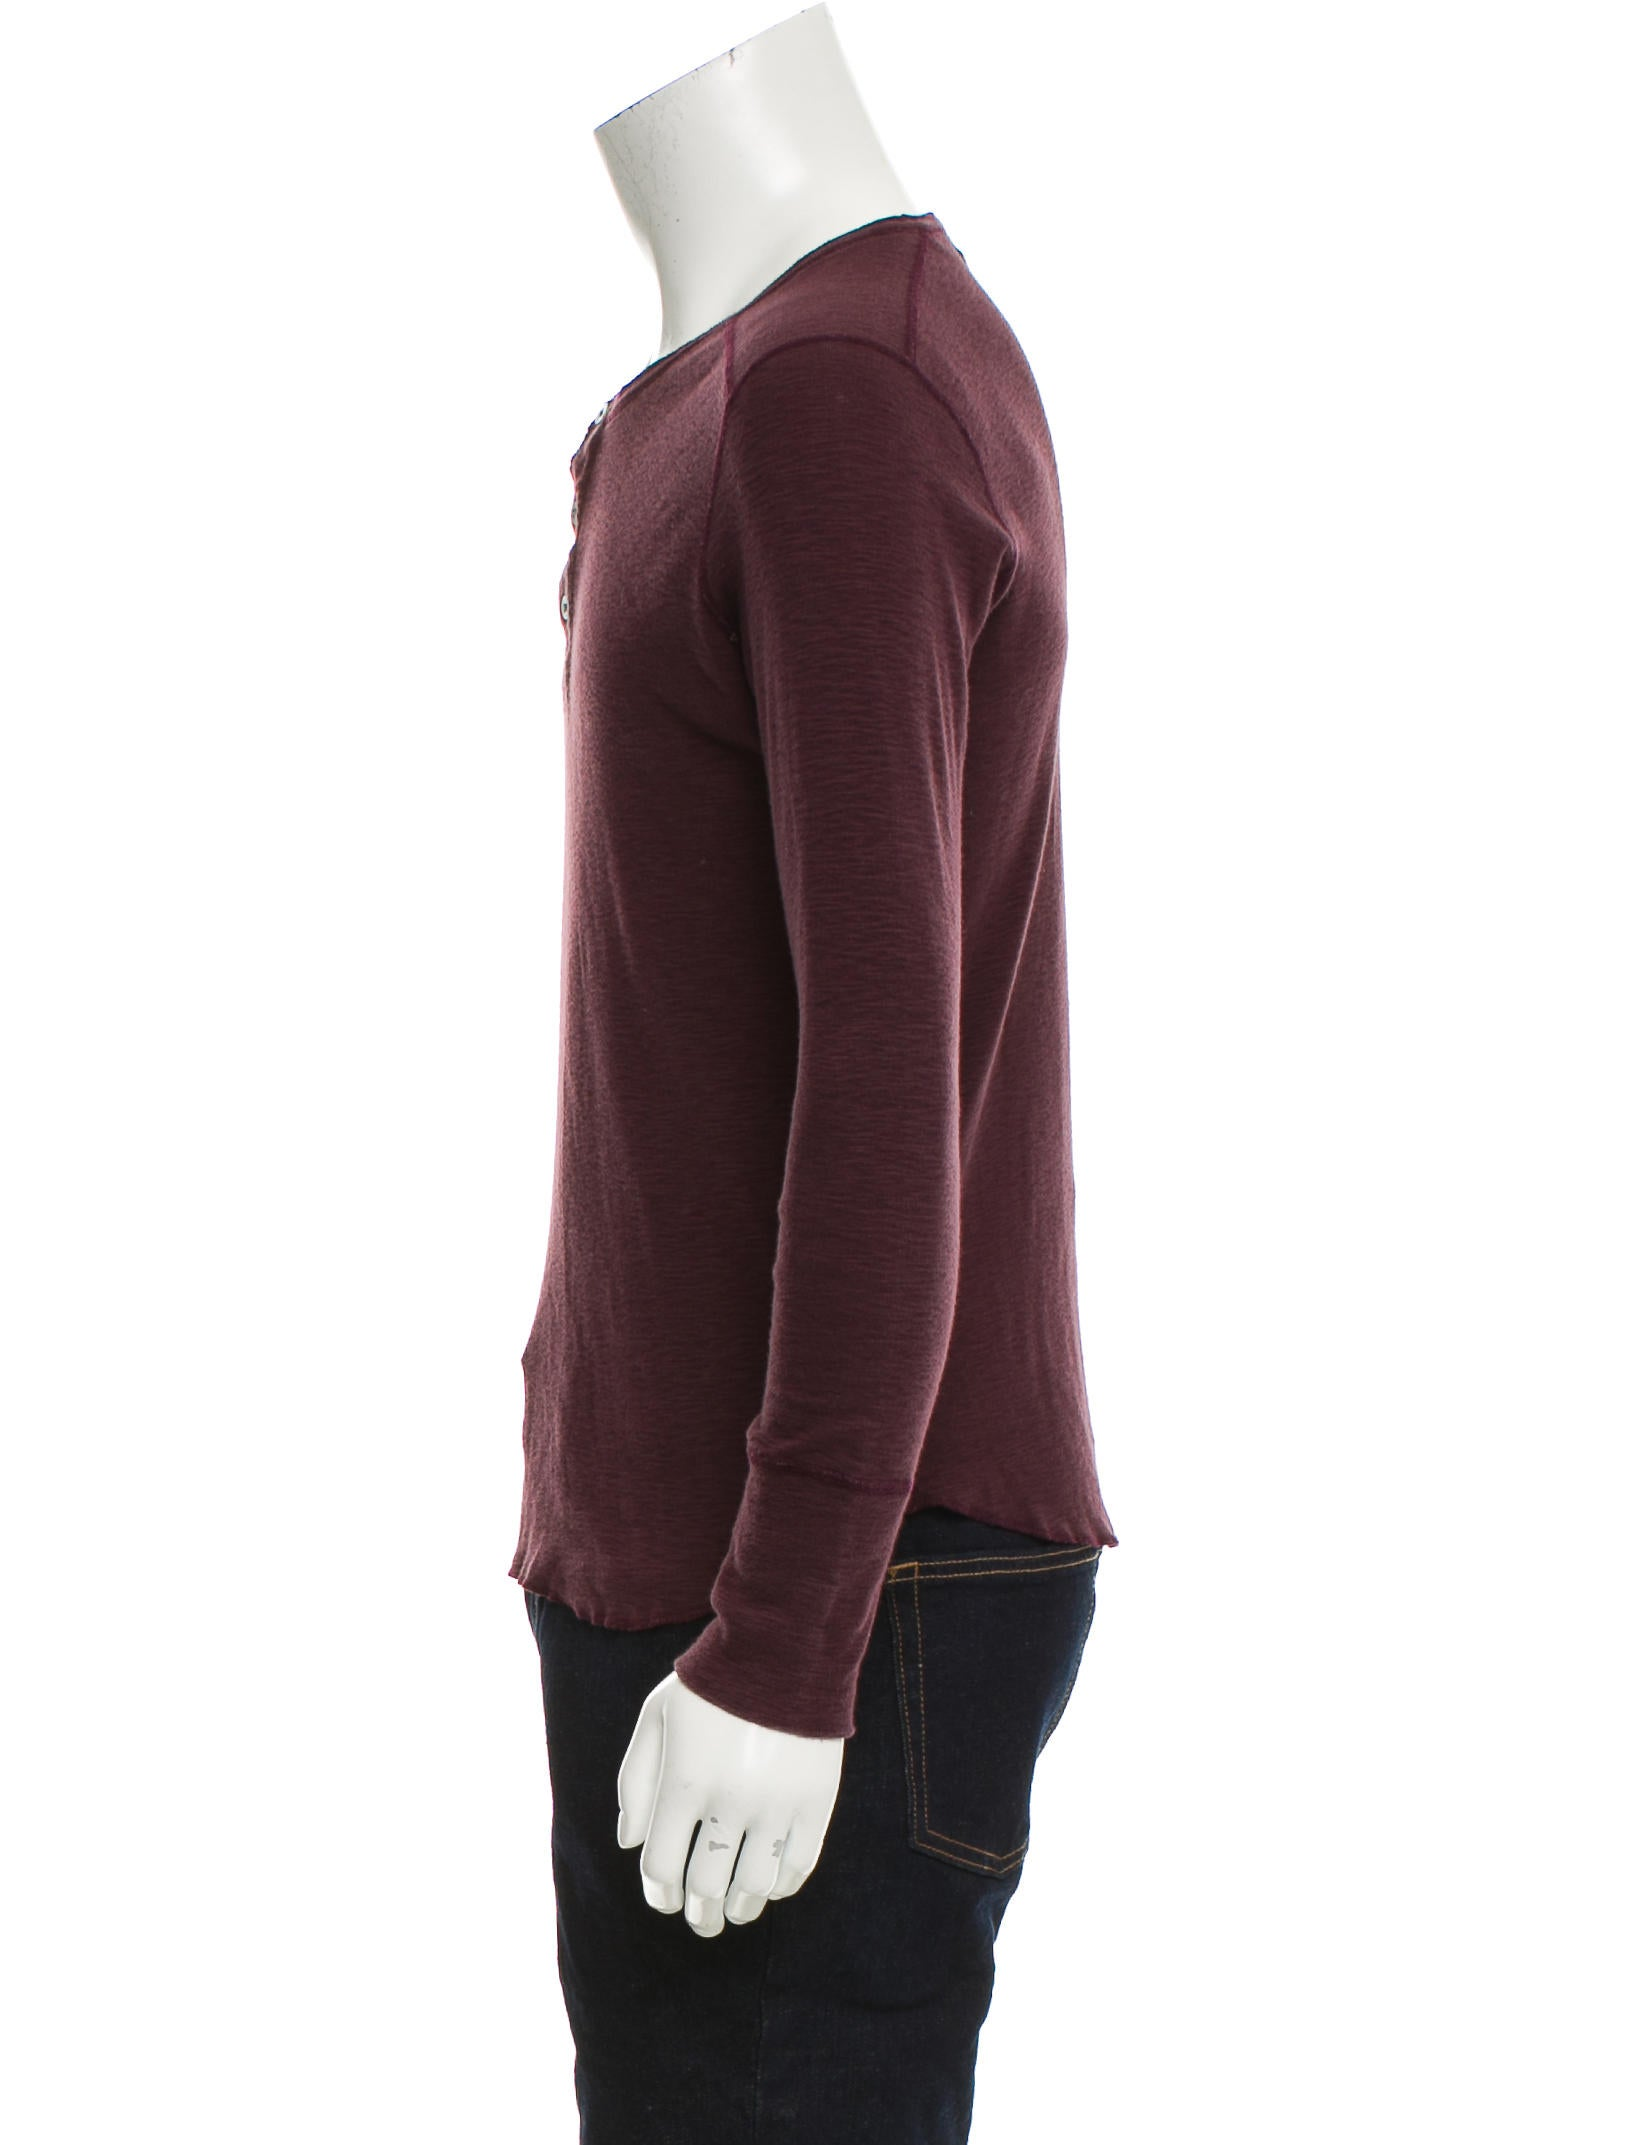 Wings + Horns Knit Henley Sweater - Clothing - WWHNS20169 The RealReal